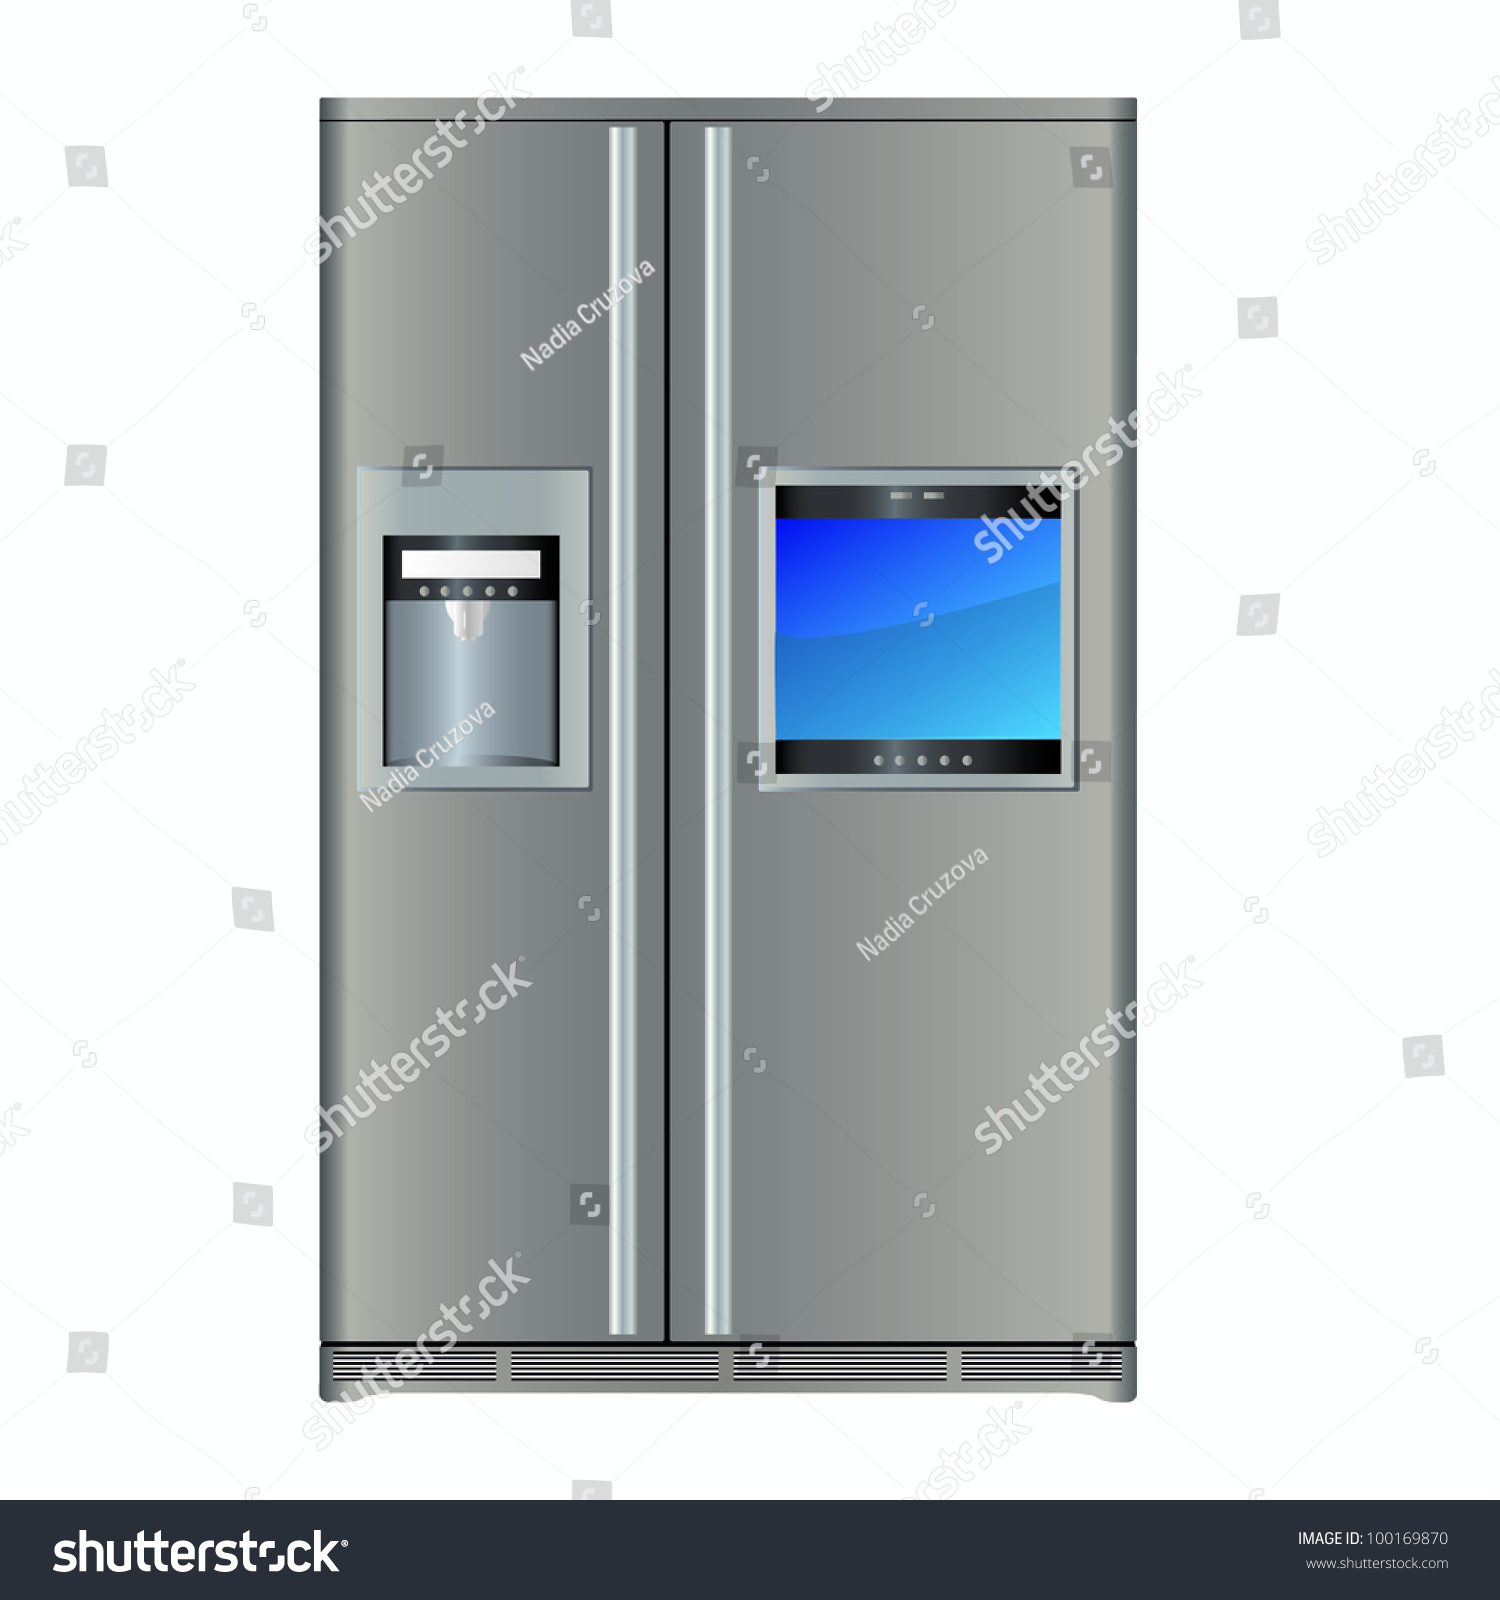 Refrigerator With Built In TV